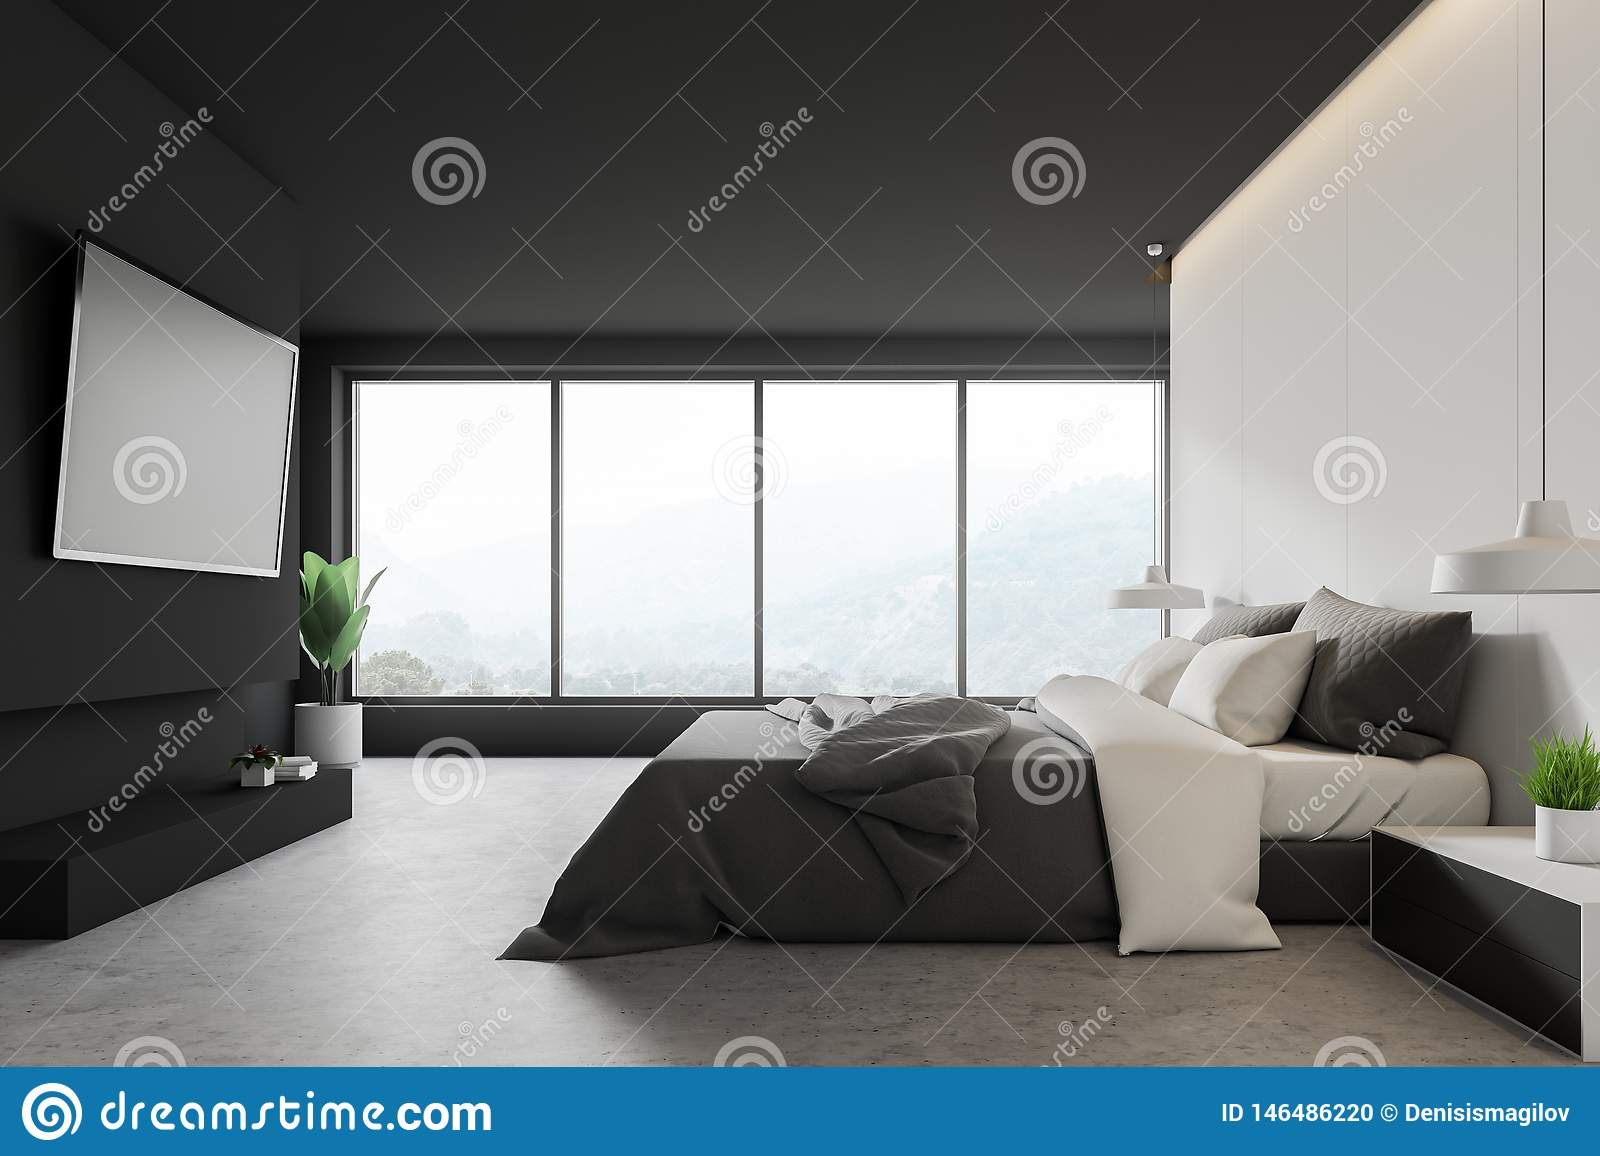 White and gray bedroom with TV